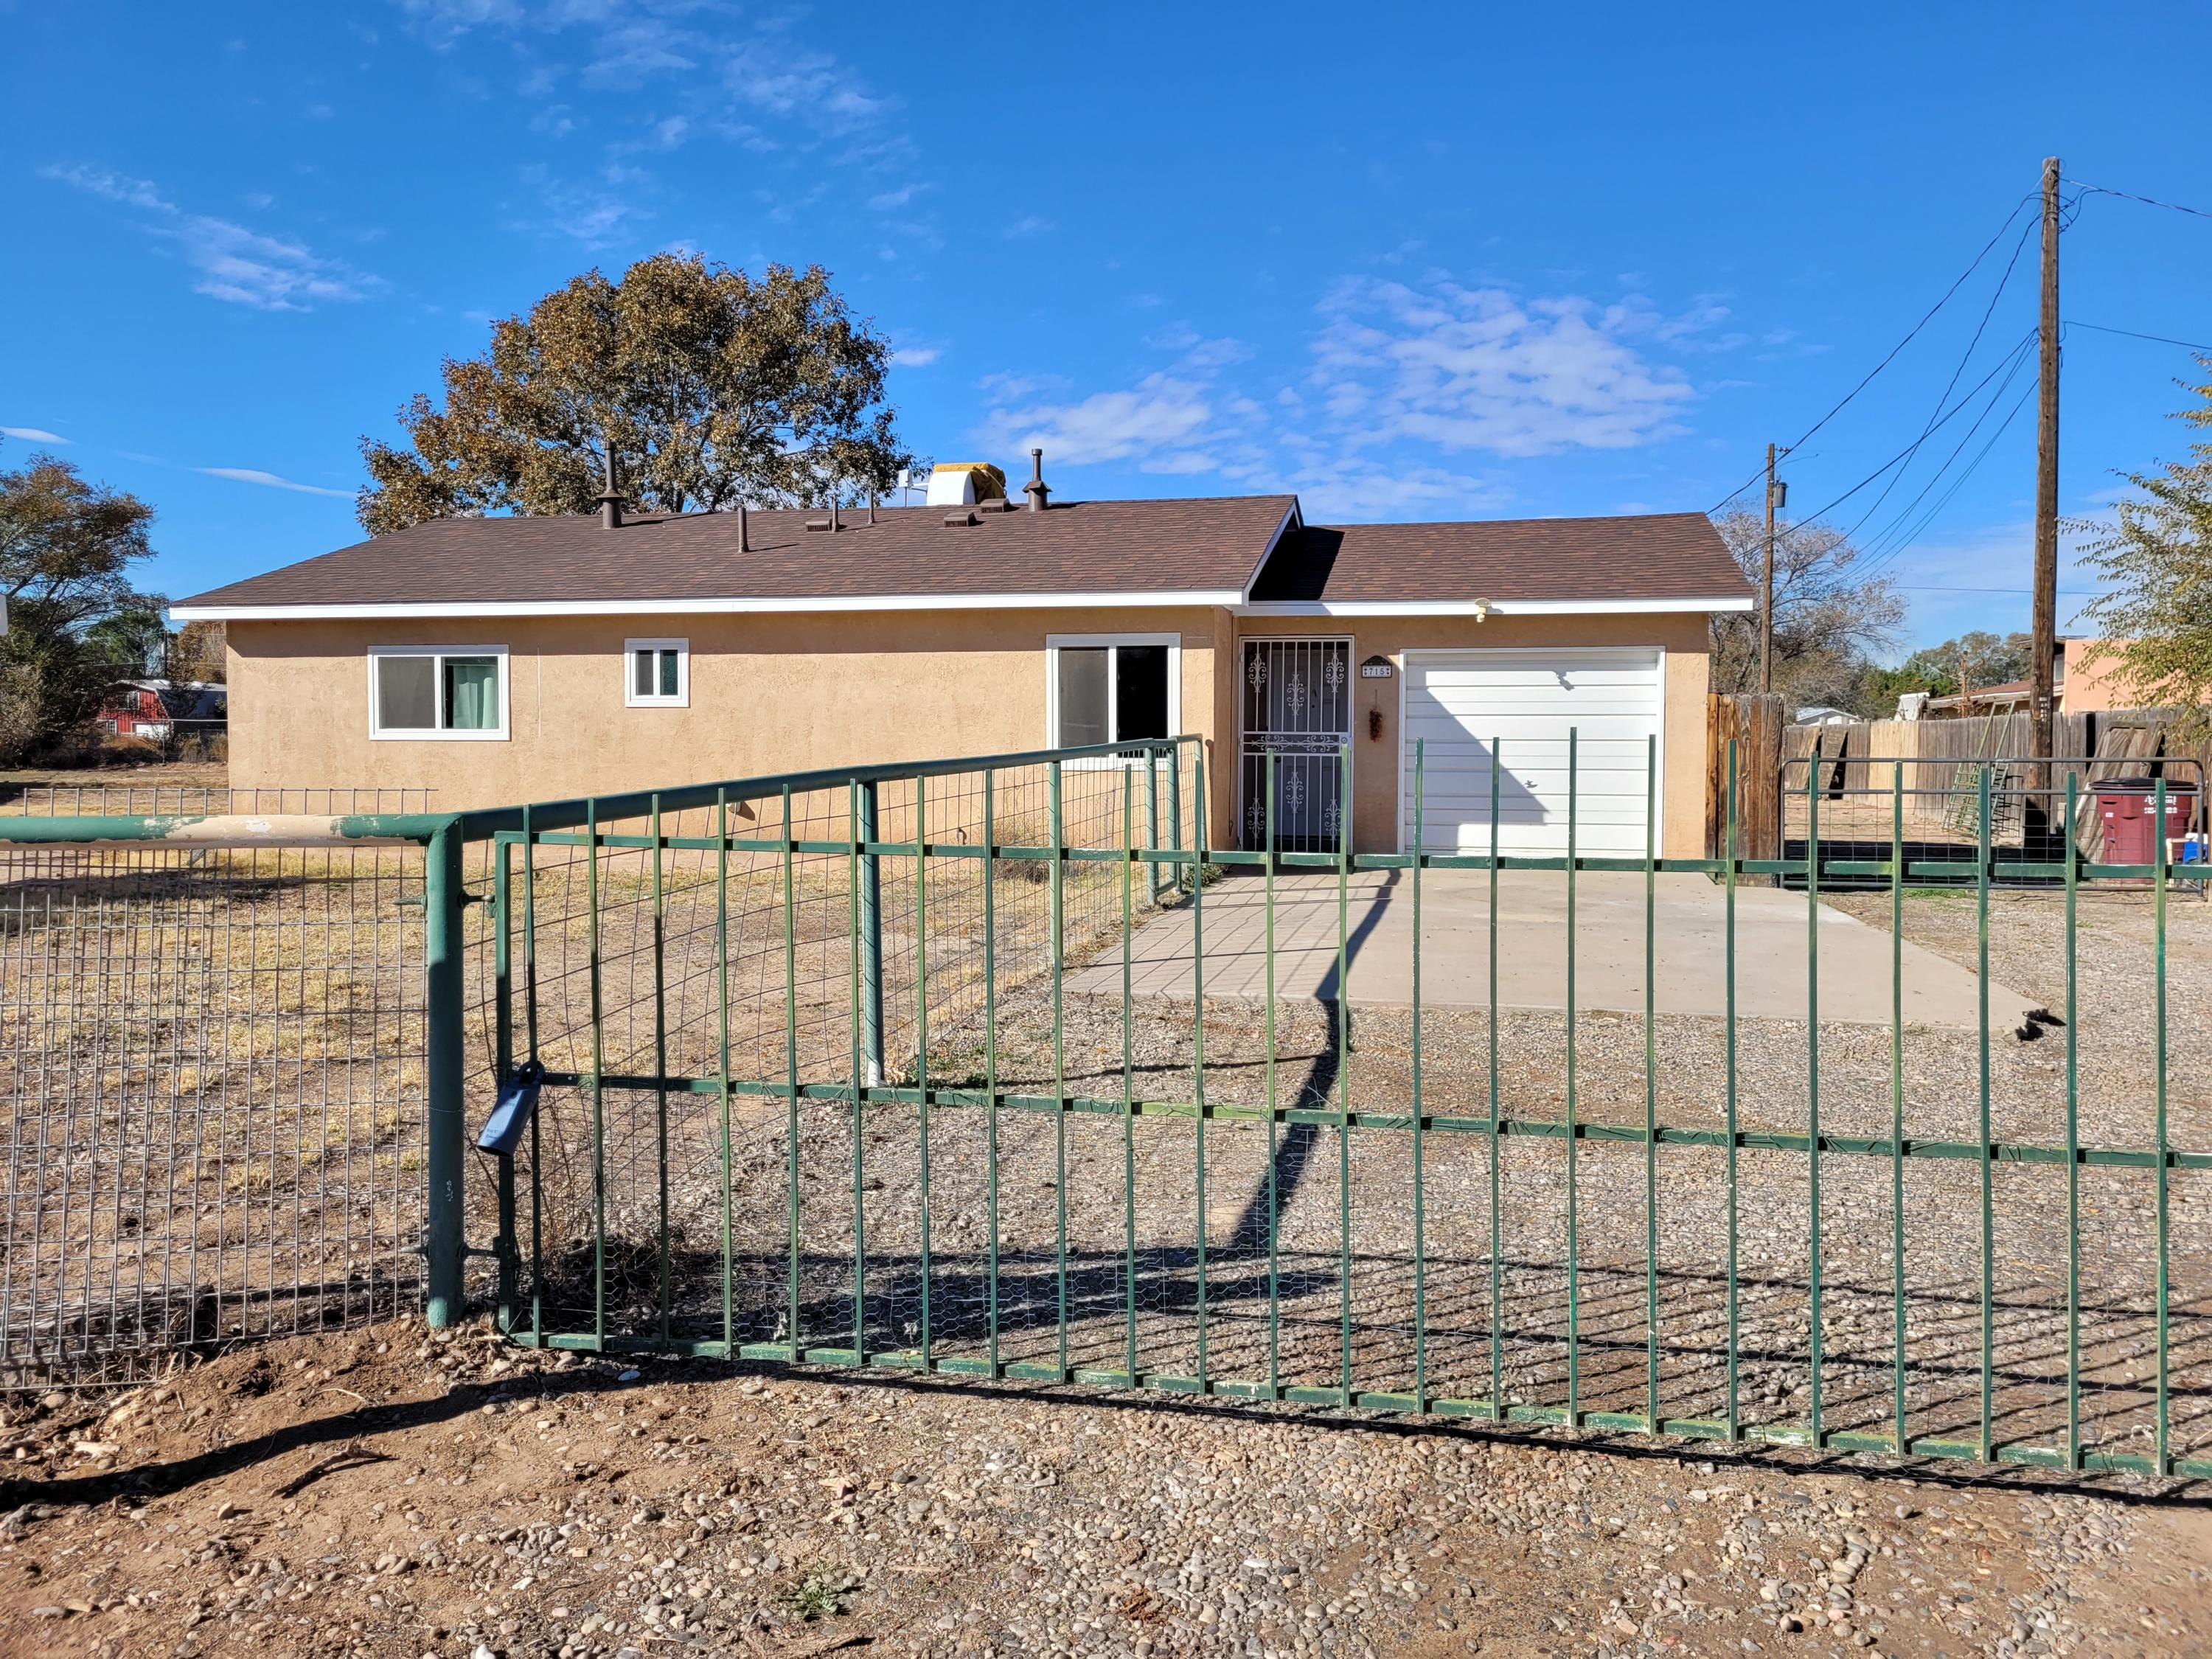 Ranch-style 3 bedroom, 1.5 bath w/ single car garage in beautiful Bosque Farms on over a half acre of land. All appliances stay! Great place to start or if downsizing, this home is situated in the quiet Foxcroft Acres area and backs up to the Otero Drain with easy access to walking, biking, and riding. Just a nice walk from the Rodeo Arena, community center, playground, and youth sports fields! This home is site-built and well insulated with all energy efficient windows, a BRAND NEW roof and all tile or LVT flooring, tile surrounds. Home is on Village of Bosque Farms water and sewer-no septic! Property is fully cleared, fenced w/irrigation well for all of your gardening, landscaping, and animals. Plenty of space for horses,  shop, & more. Minutes from Albuquerque, take the drive & enjoy.